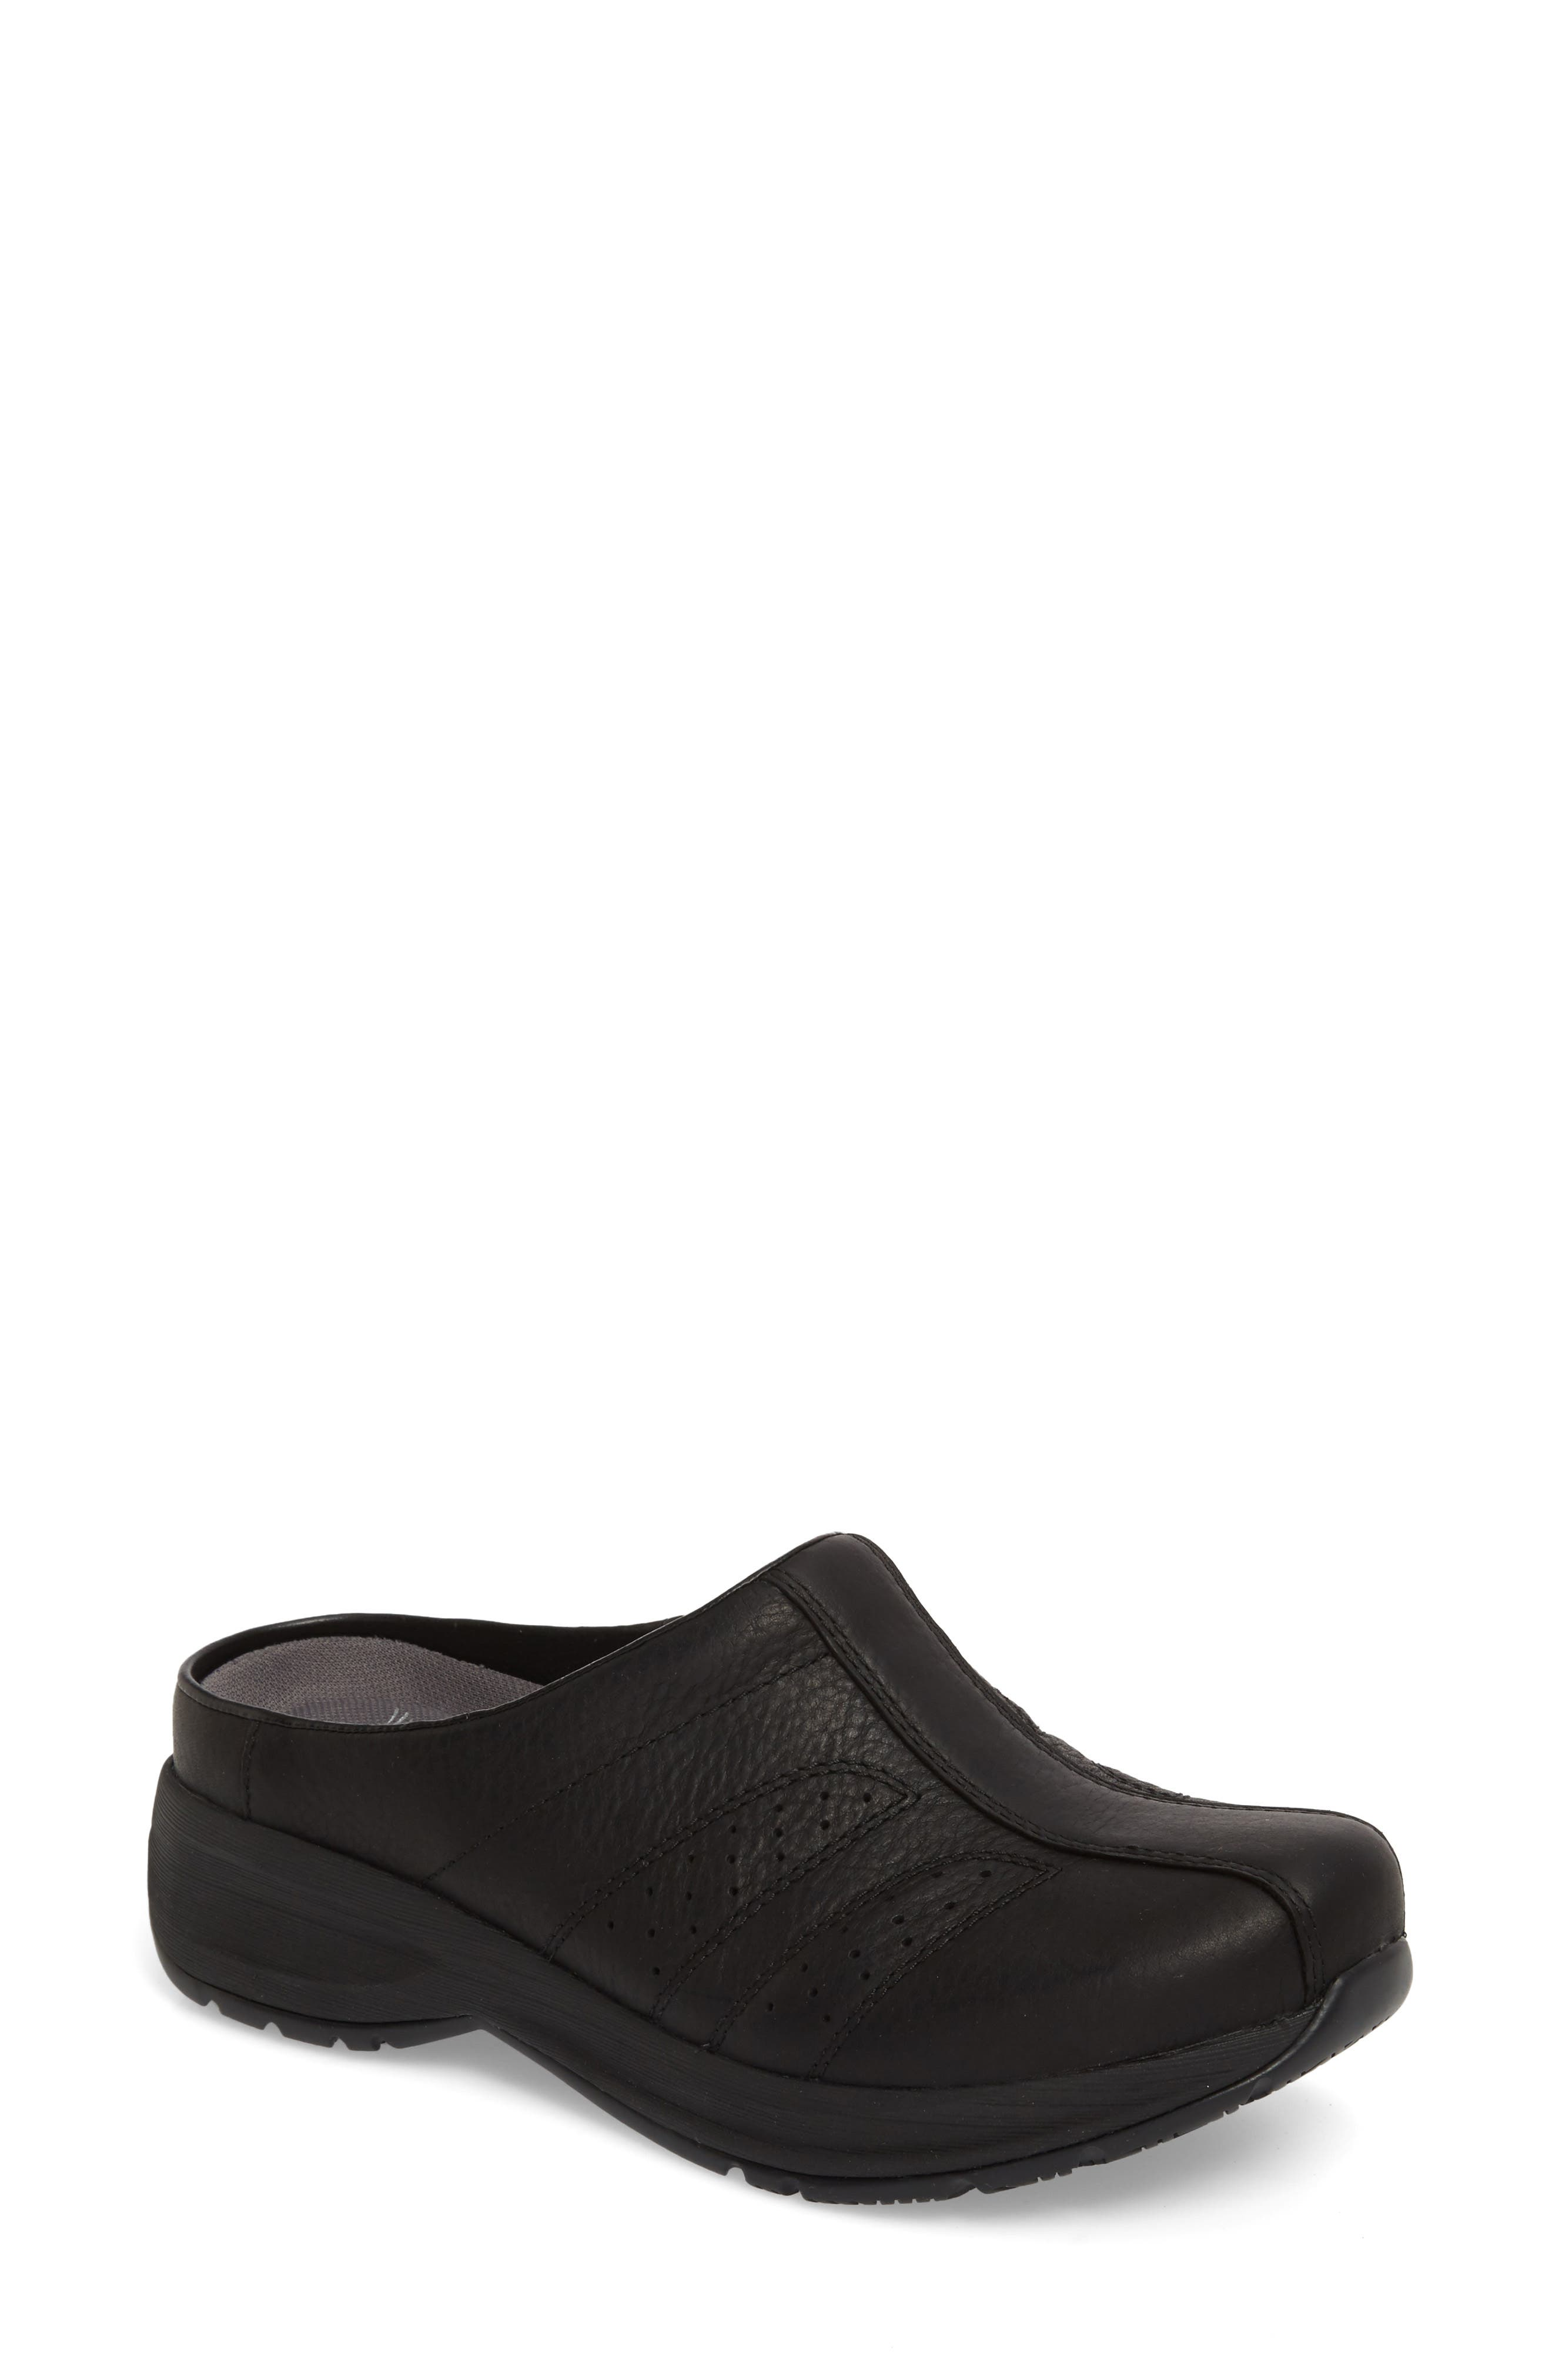 Dankso Shelly Mule,                         Main,                         color, Black Leather